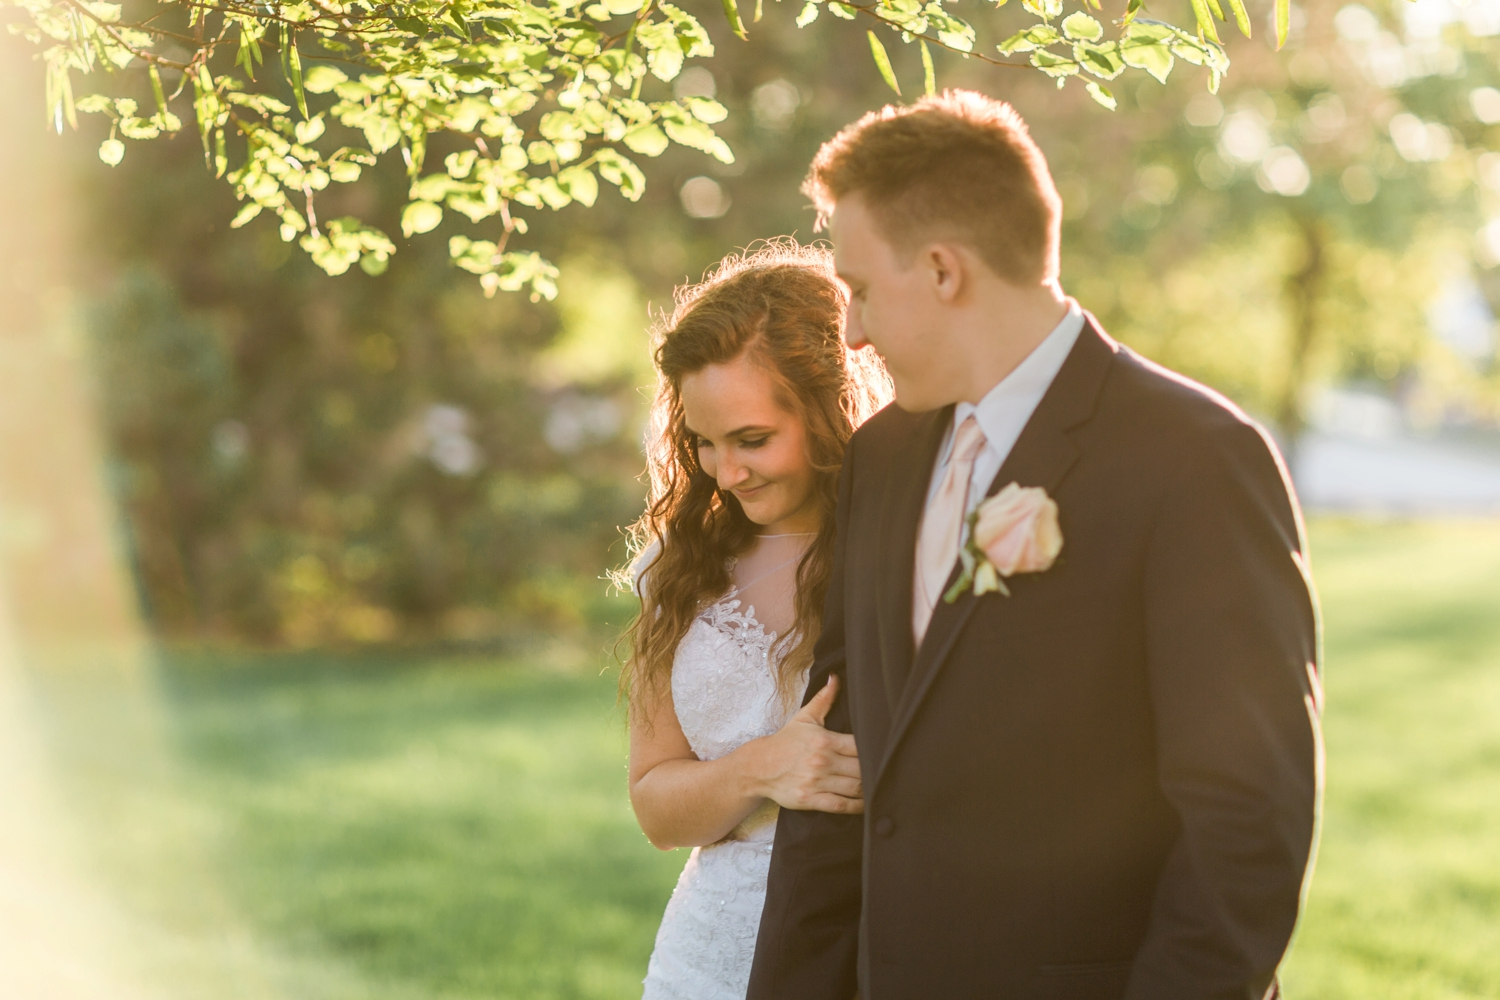 Community_Life_Center_Indianapolis_Indiana_Wedding_Photographer_Chloe_Luka_Photography_6996.jpg